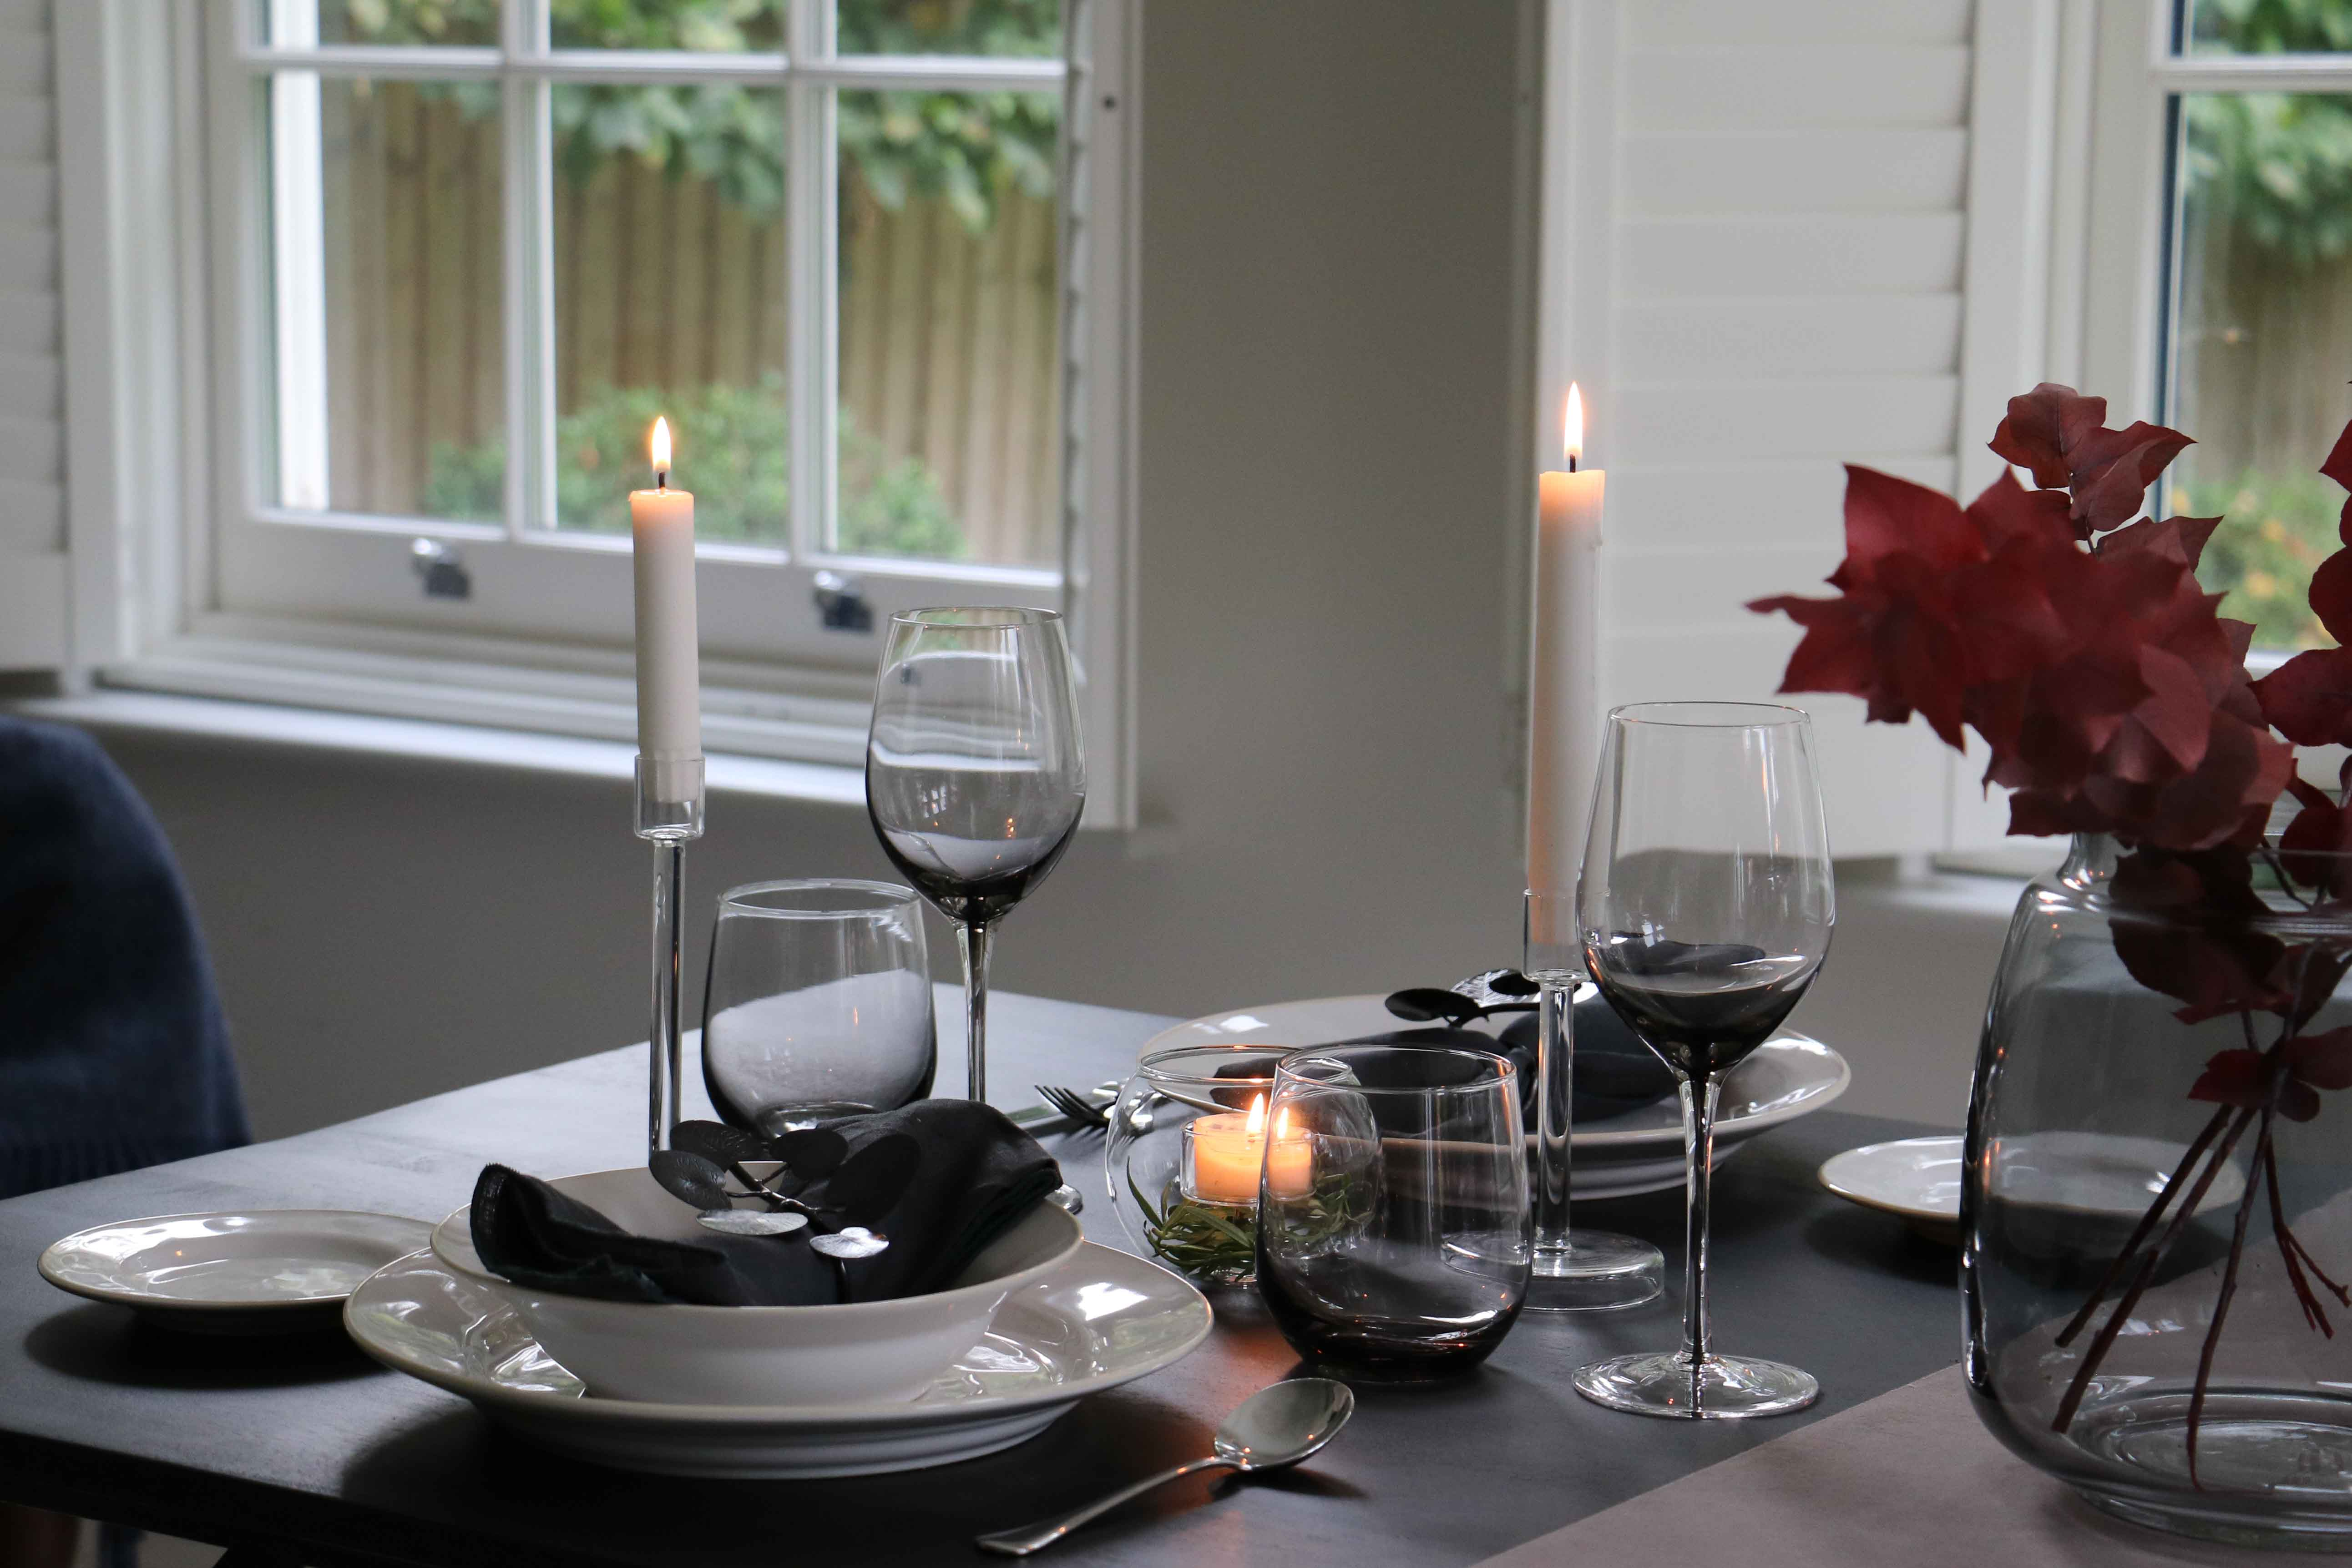 Table Setting by Layered Lounge styled with Astoria Tableware, Glass Candle Holders and Grey Glassware.